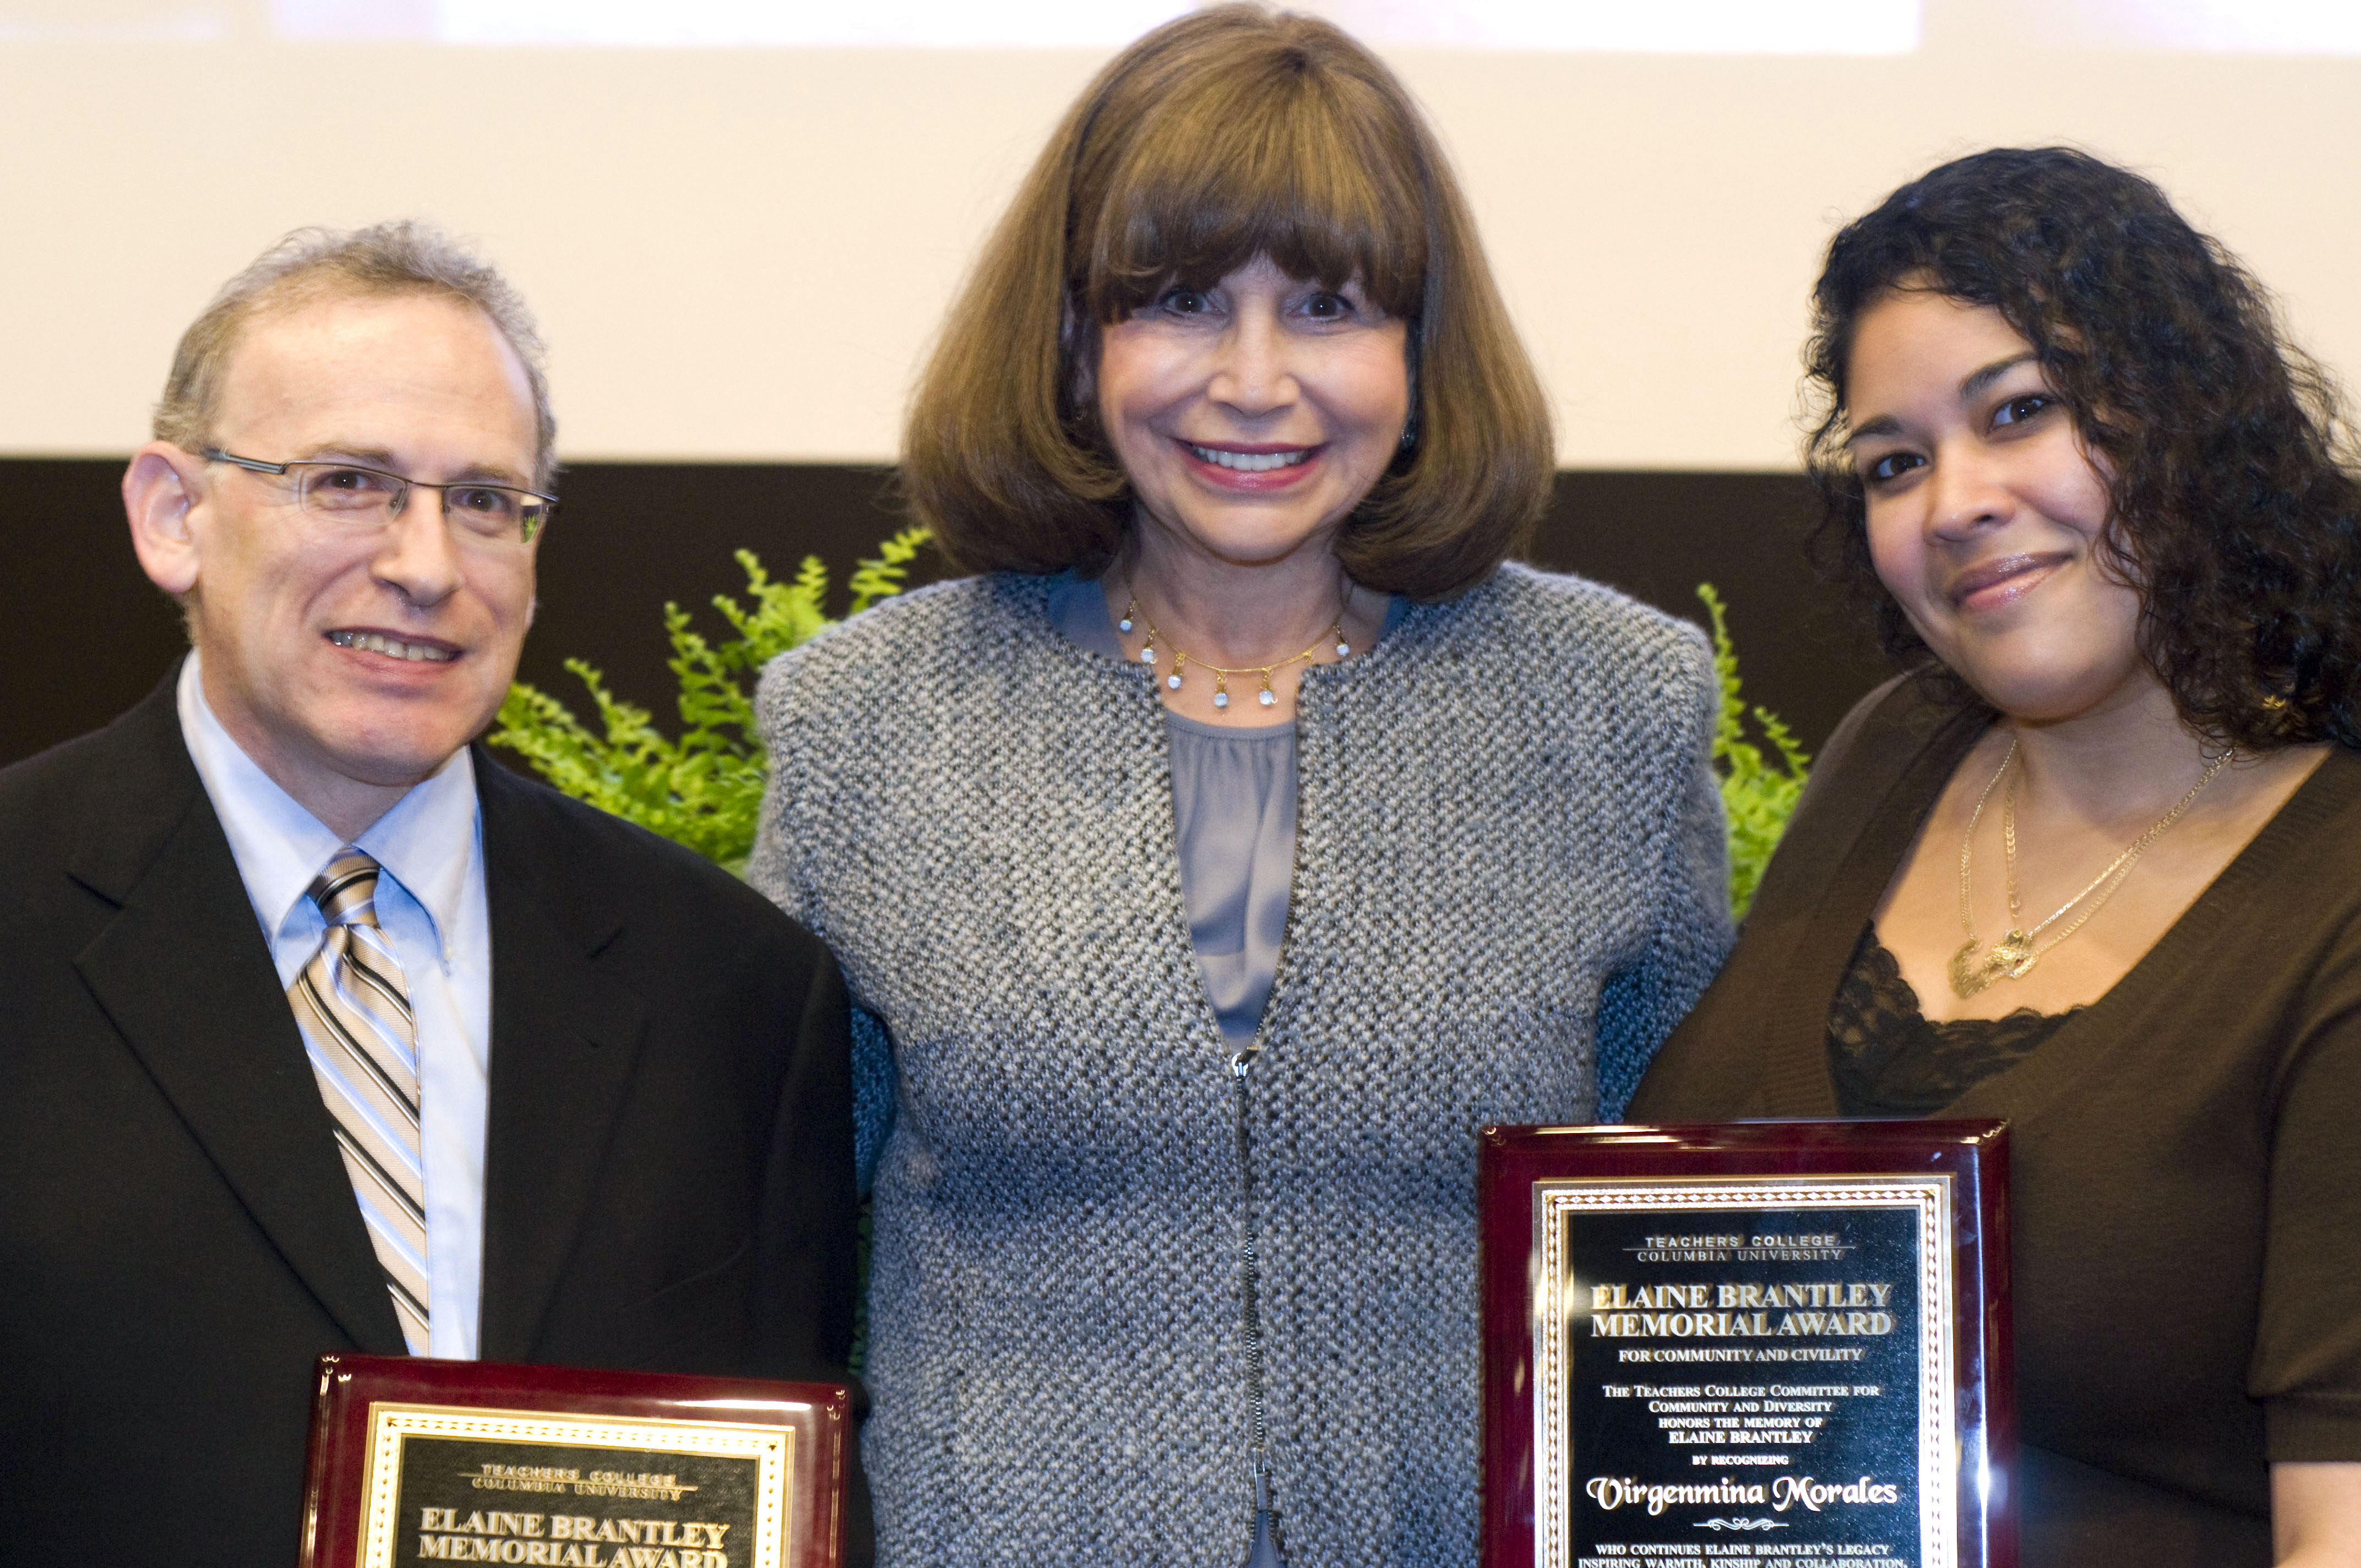 President Fuhrman honors Professor Aaron Pallas and Virgenmina Morales, Telephone Operations Technician, for their community building efforts (Photograph by Heather Van Uxem Lewis)